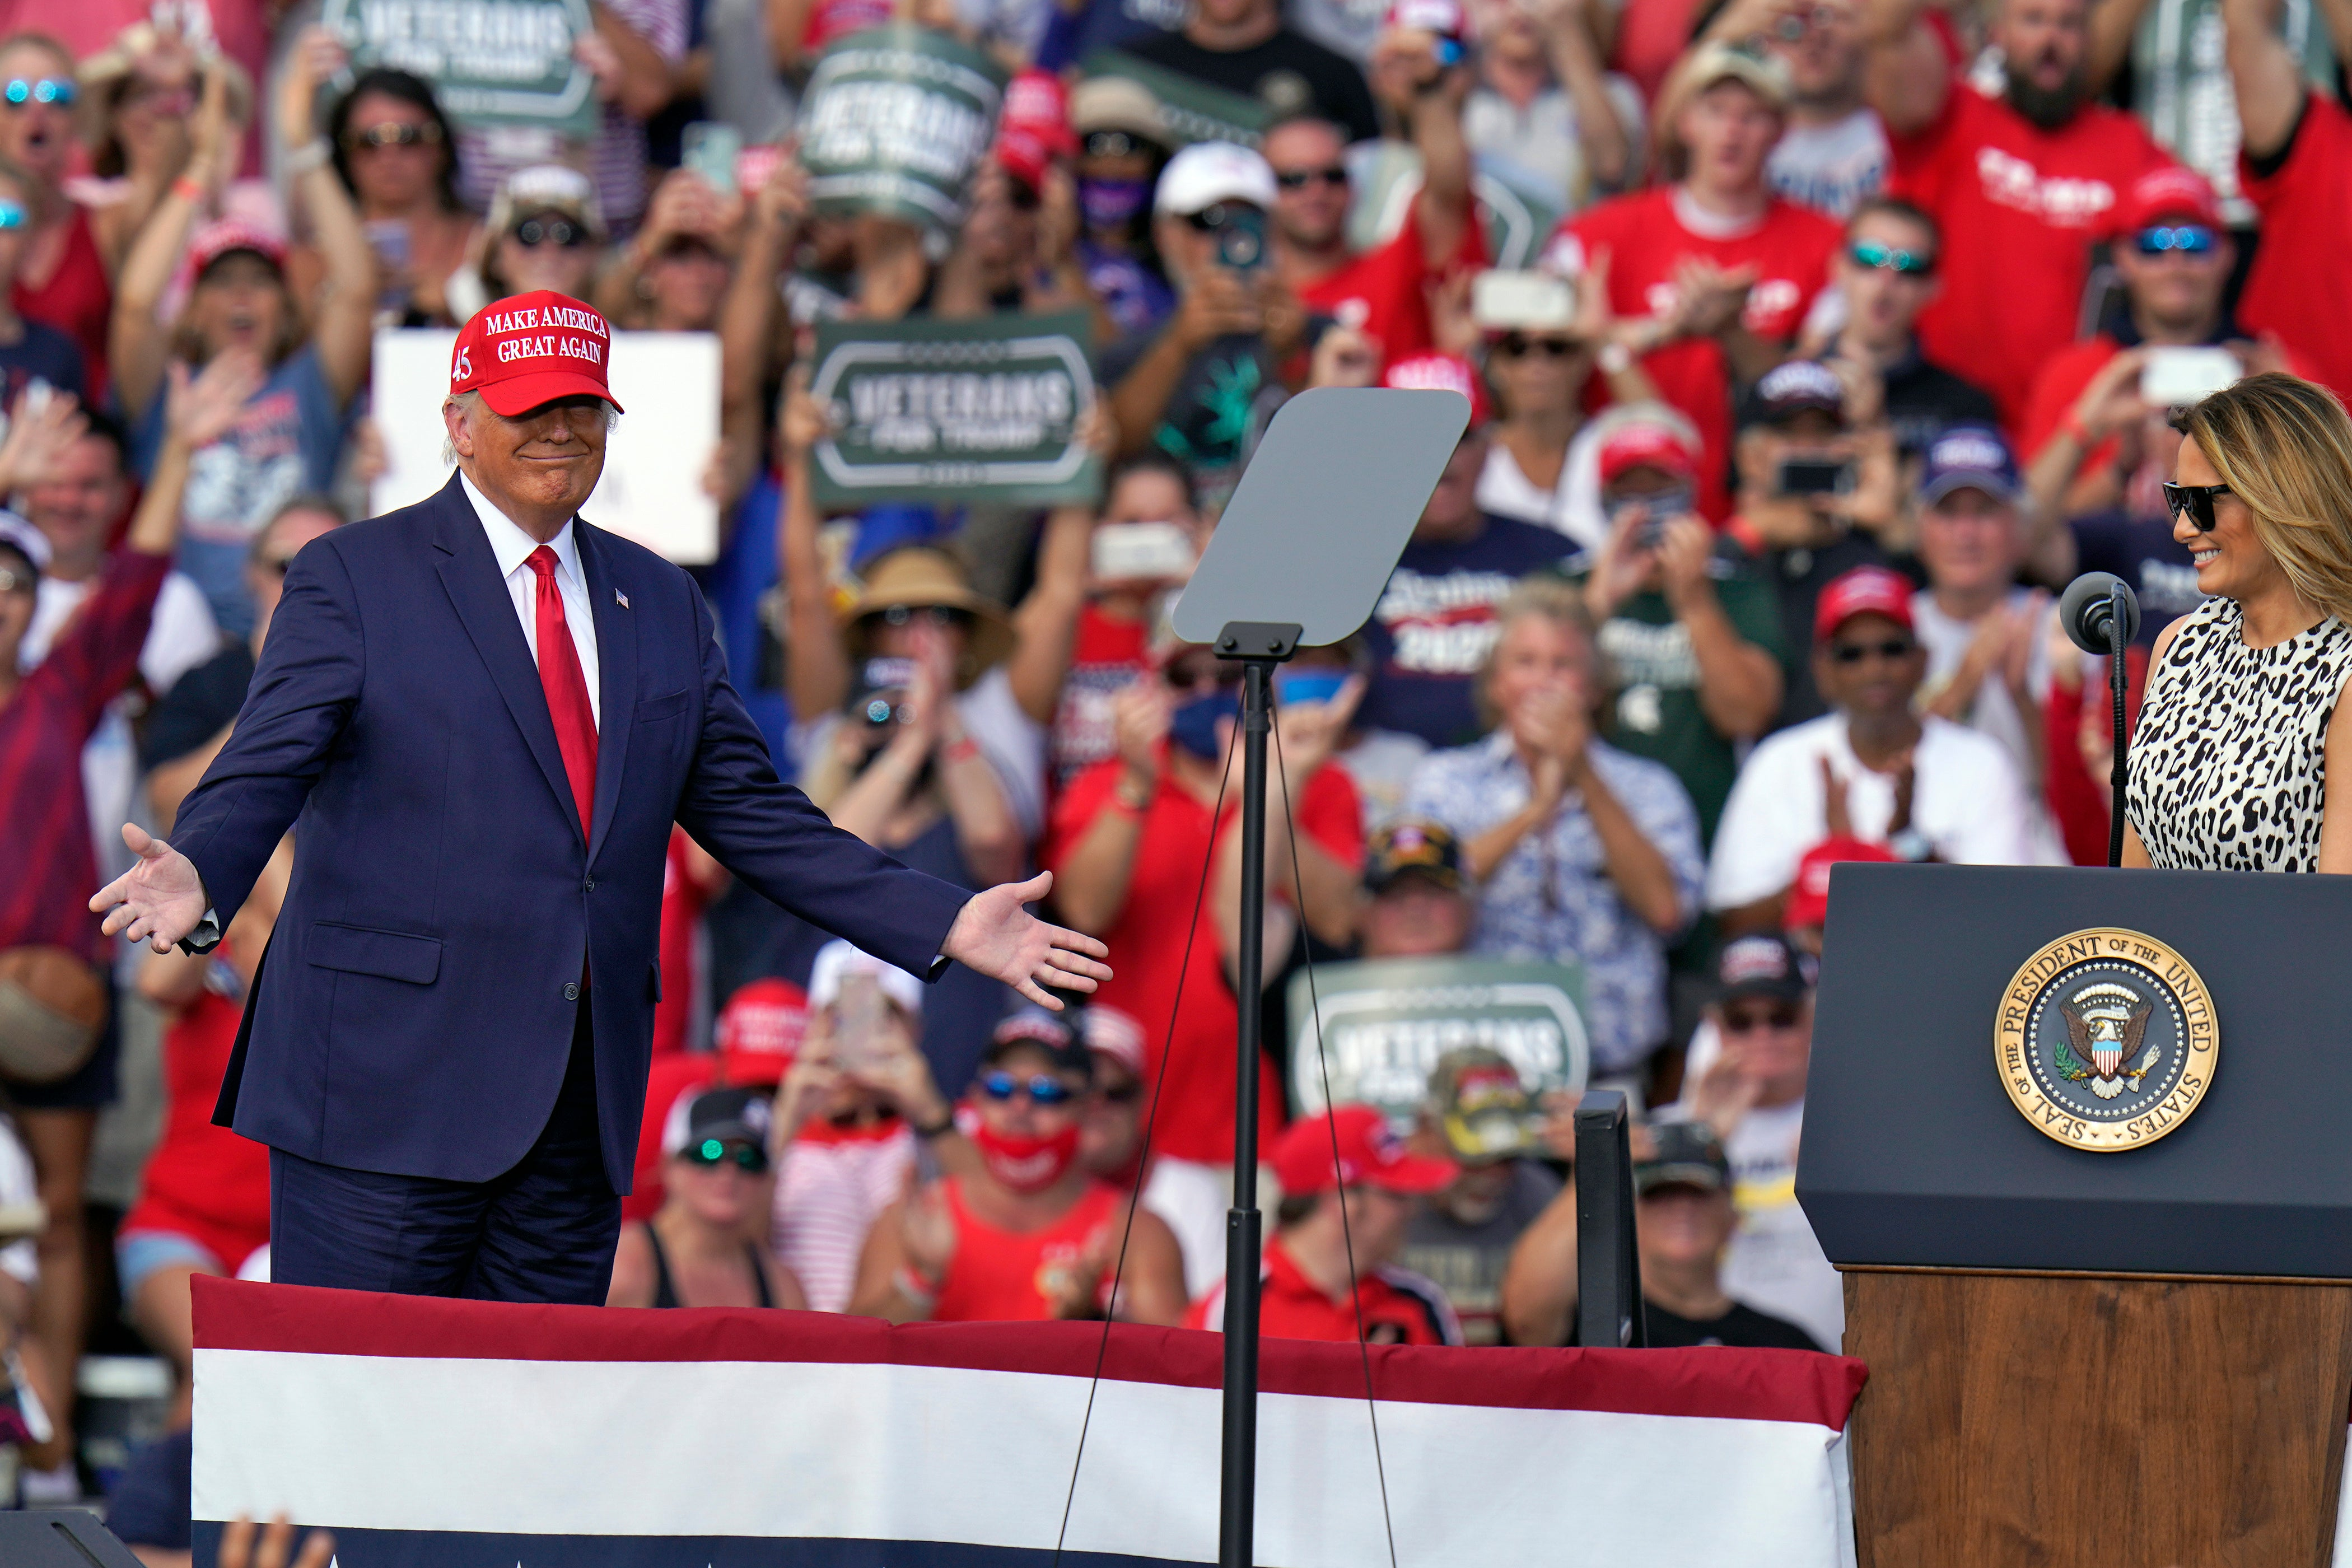 As Covid surges, Trump rallies continue to pack in thousands: 'I'm not afraid at all'